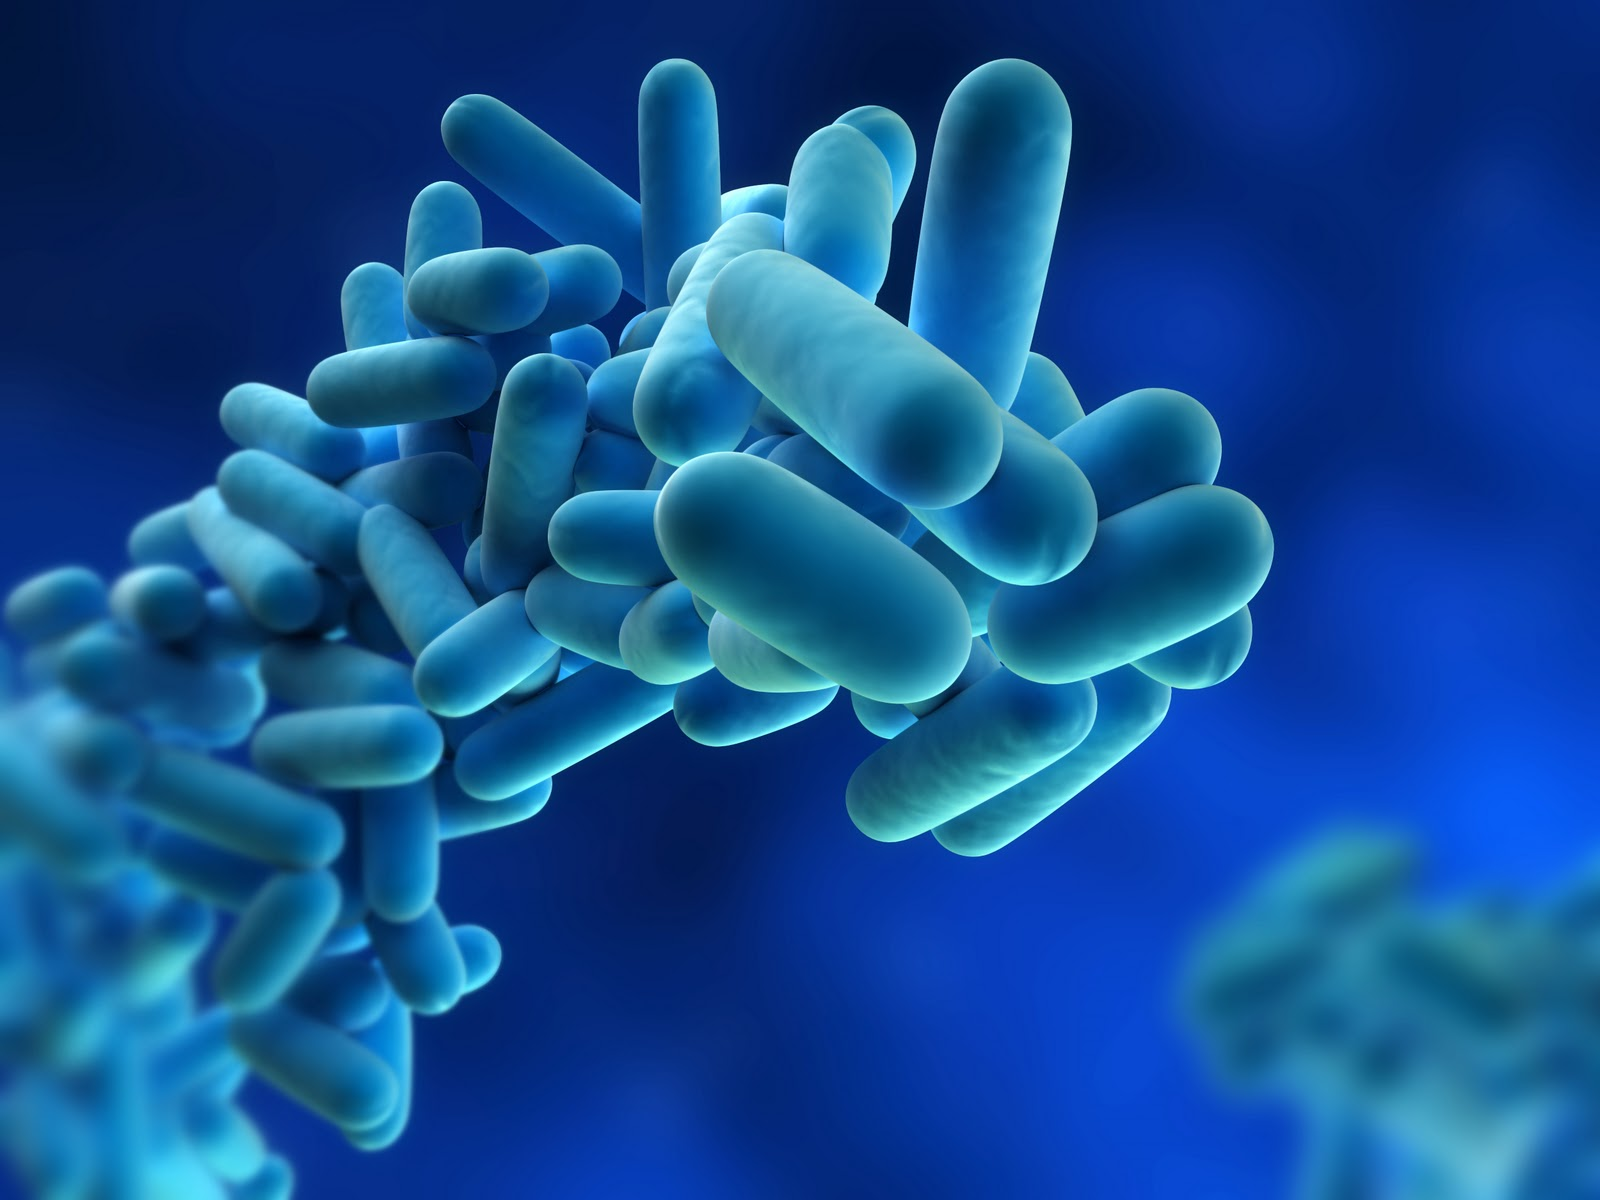 In controlling the risk from legionella bacteria in most water systems